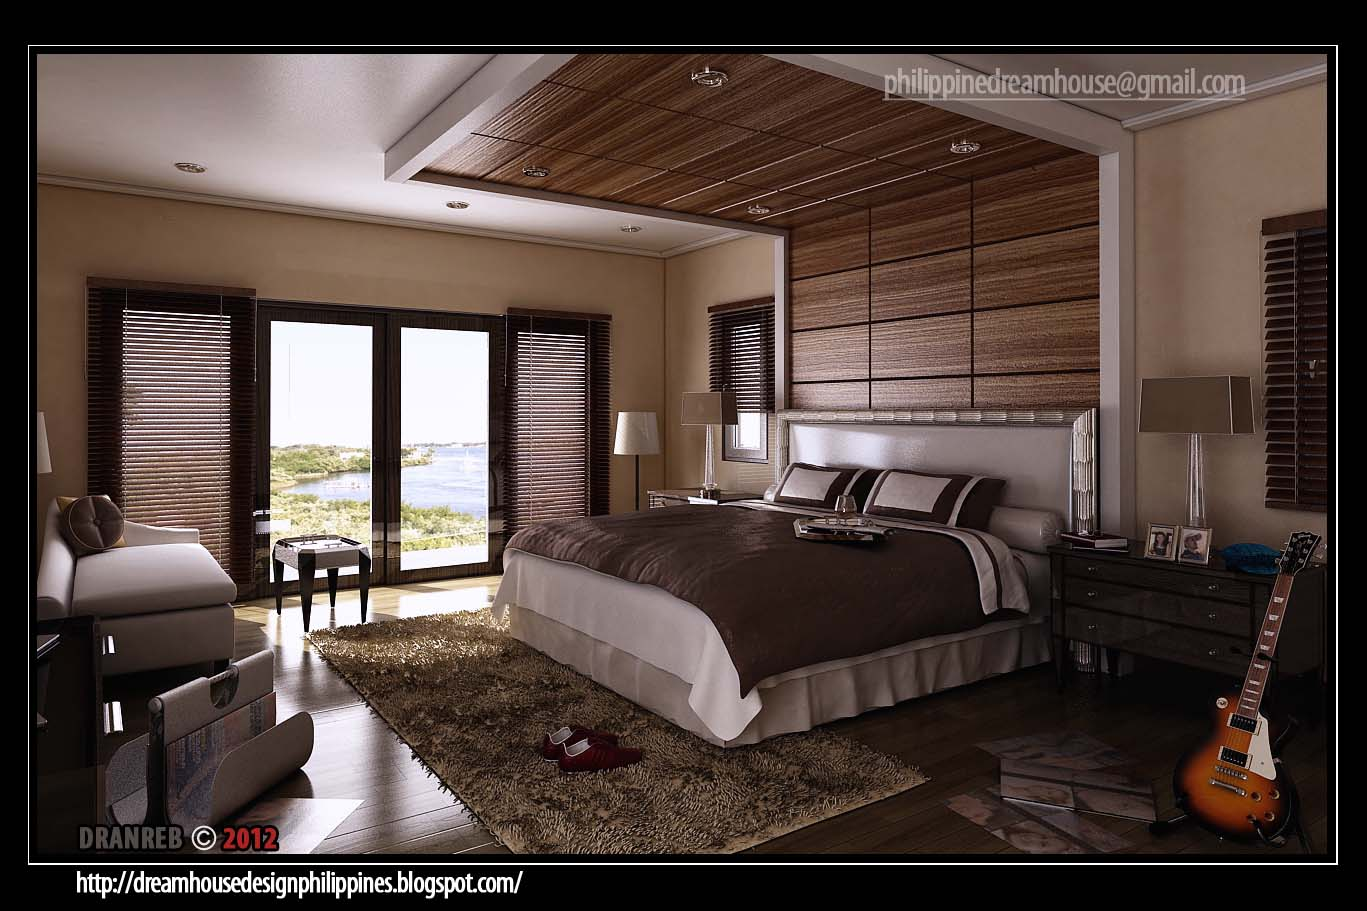 Philippine dream house design the master 39 s bedroom for Bedroom ideas philippines